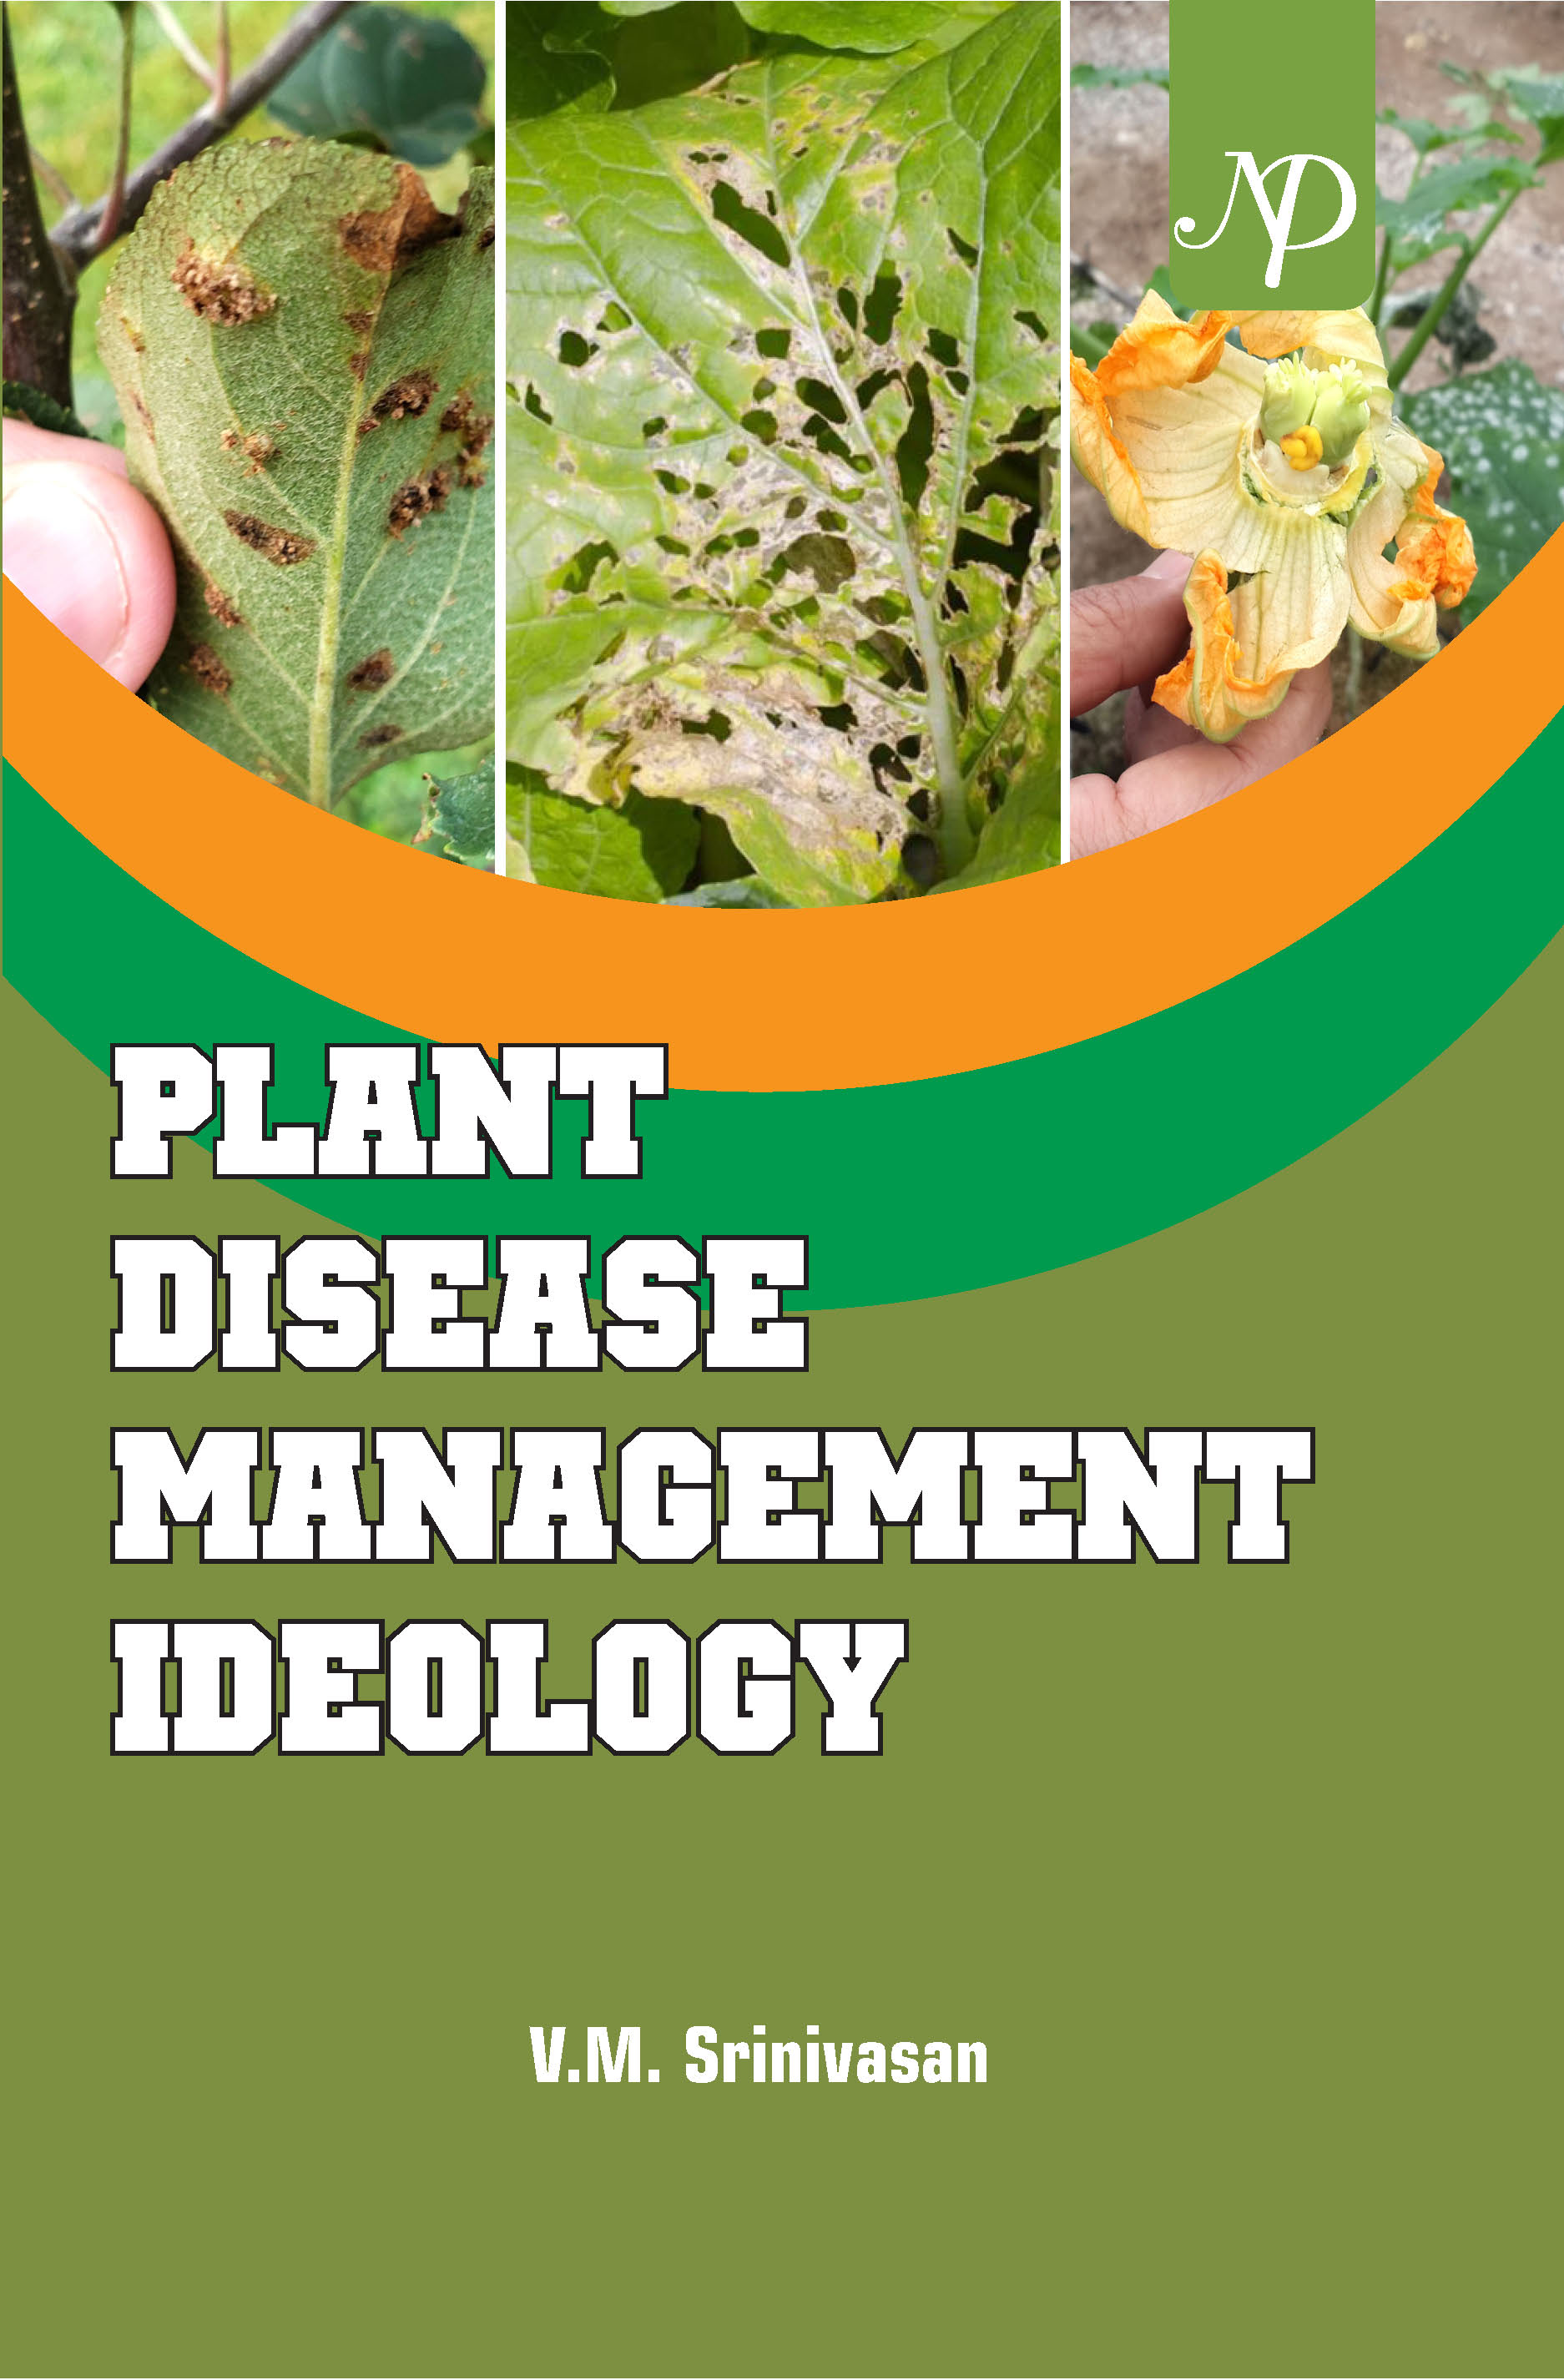 Plant Disease Management Ideology